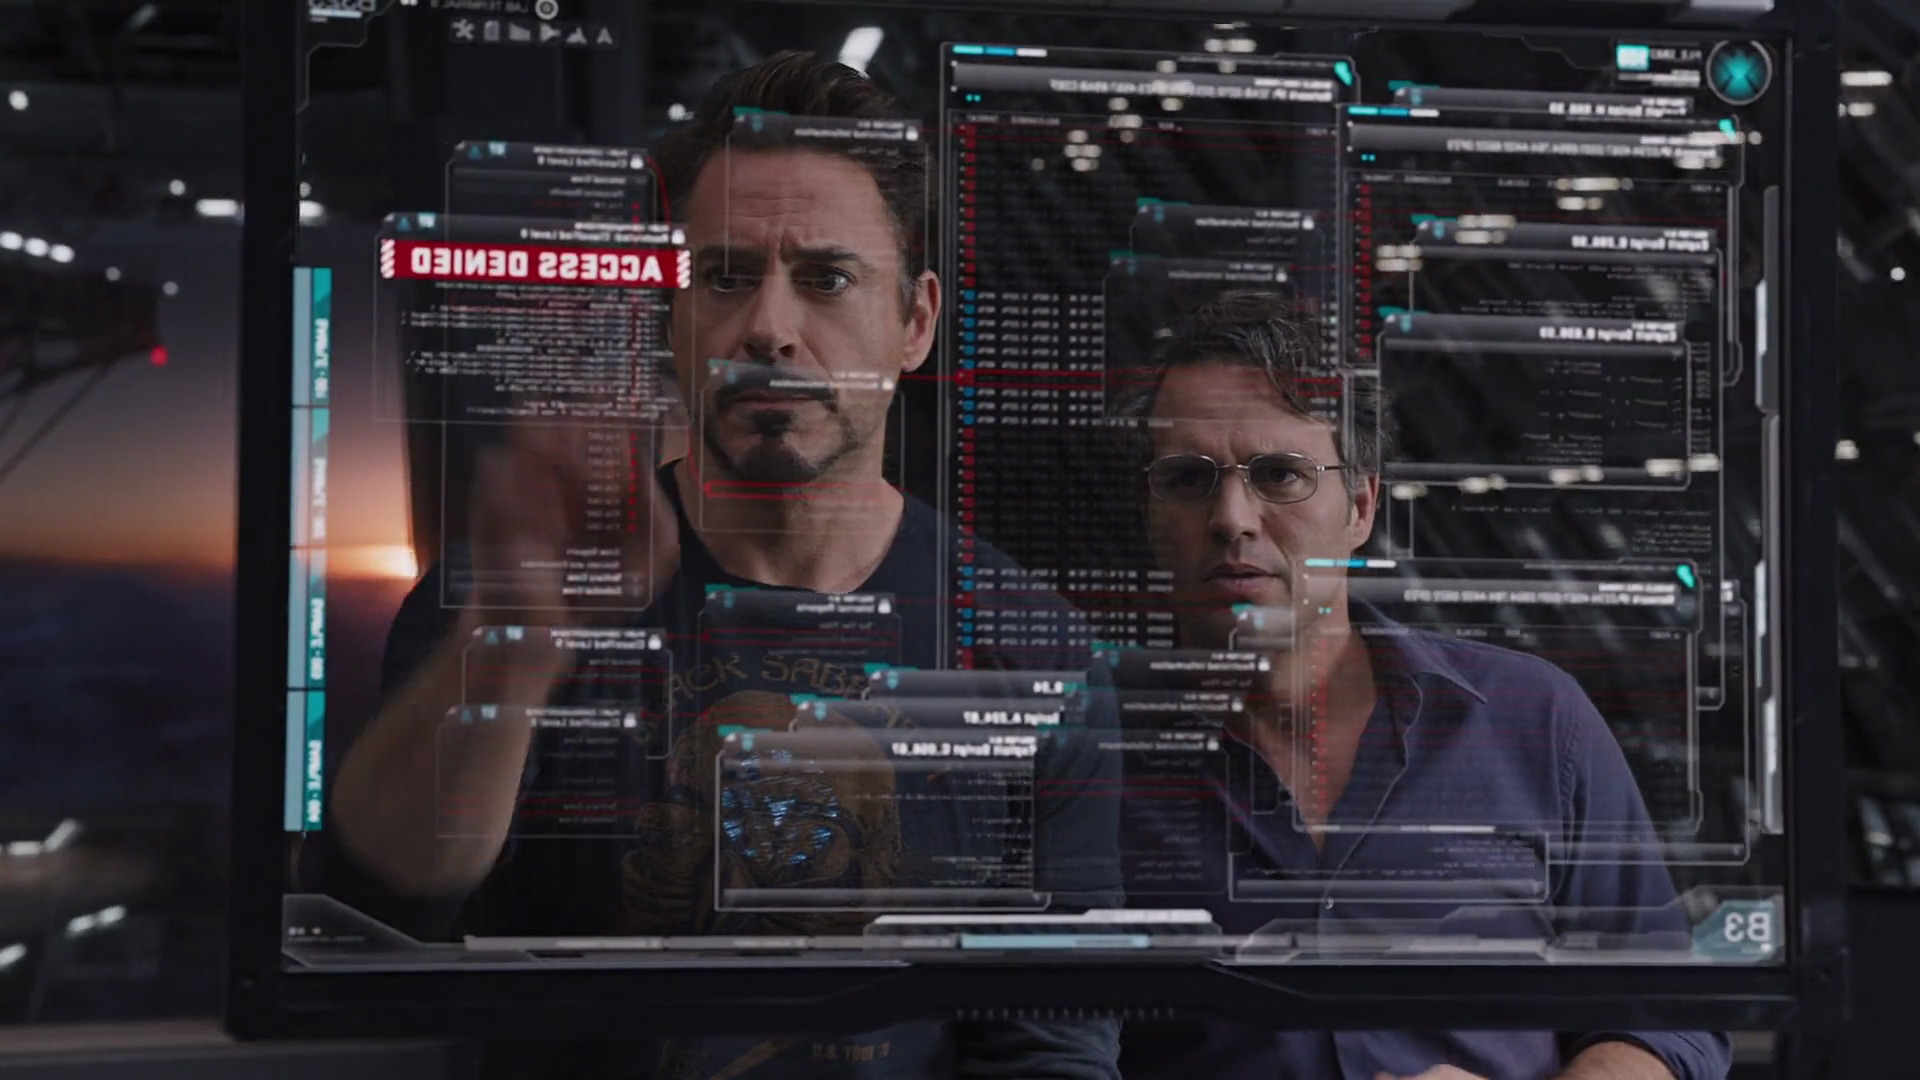 http://www.caps.media/201/2-avengers/full/avengers-movie-screencaps.com-7800.jpg